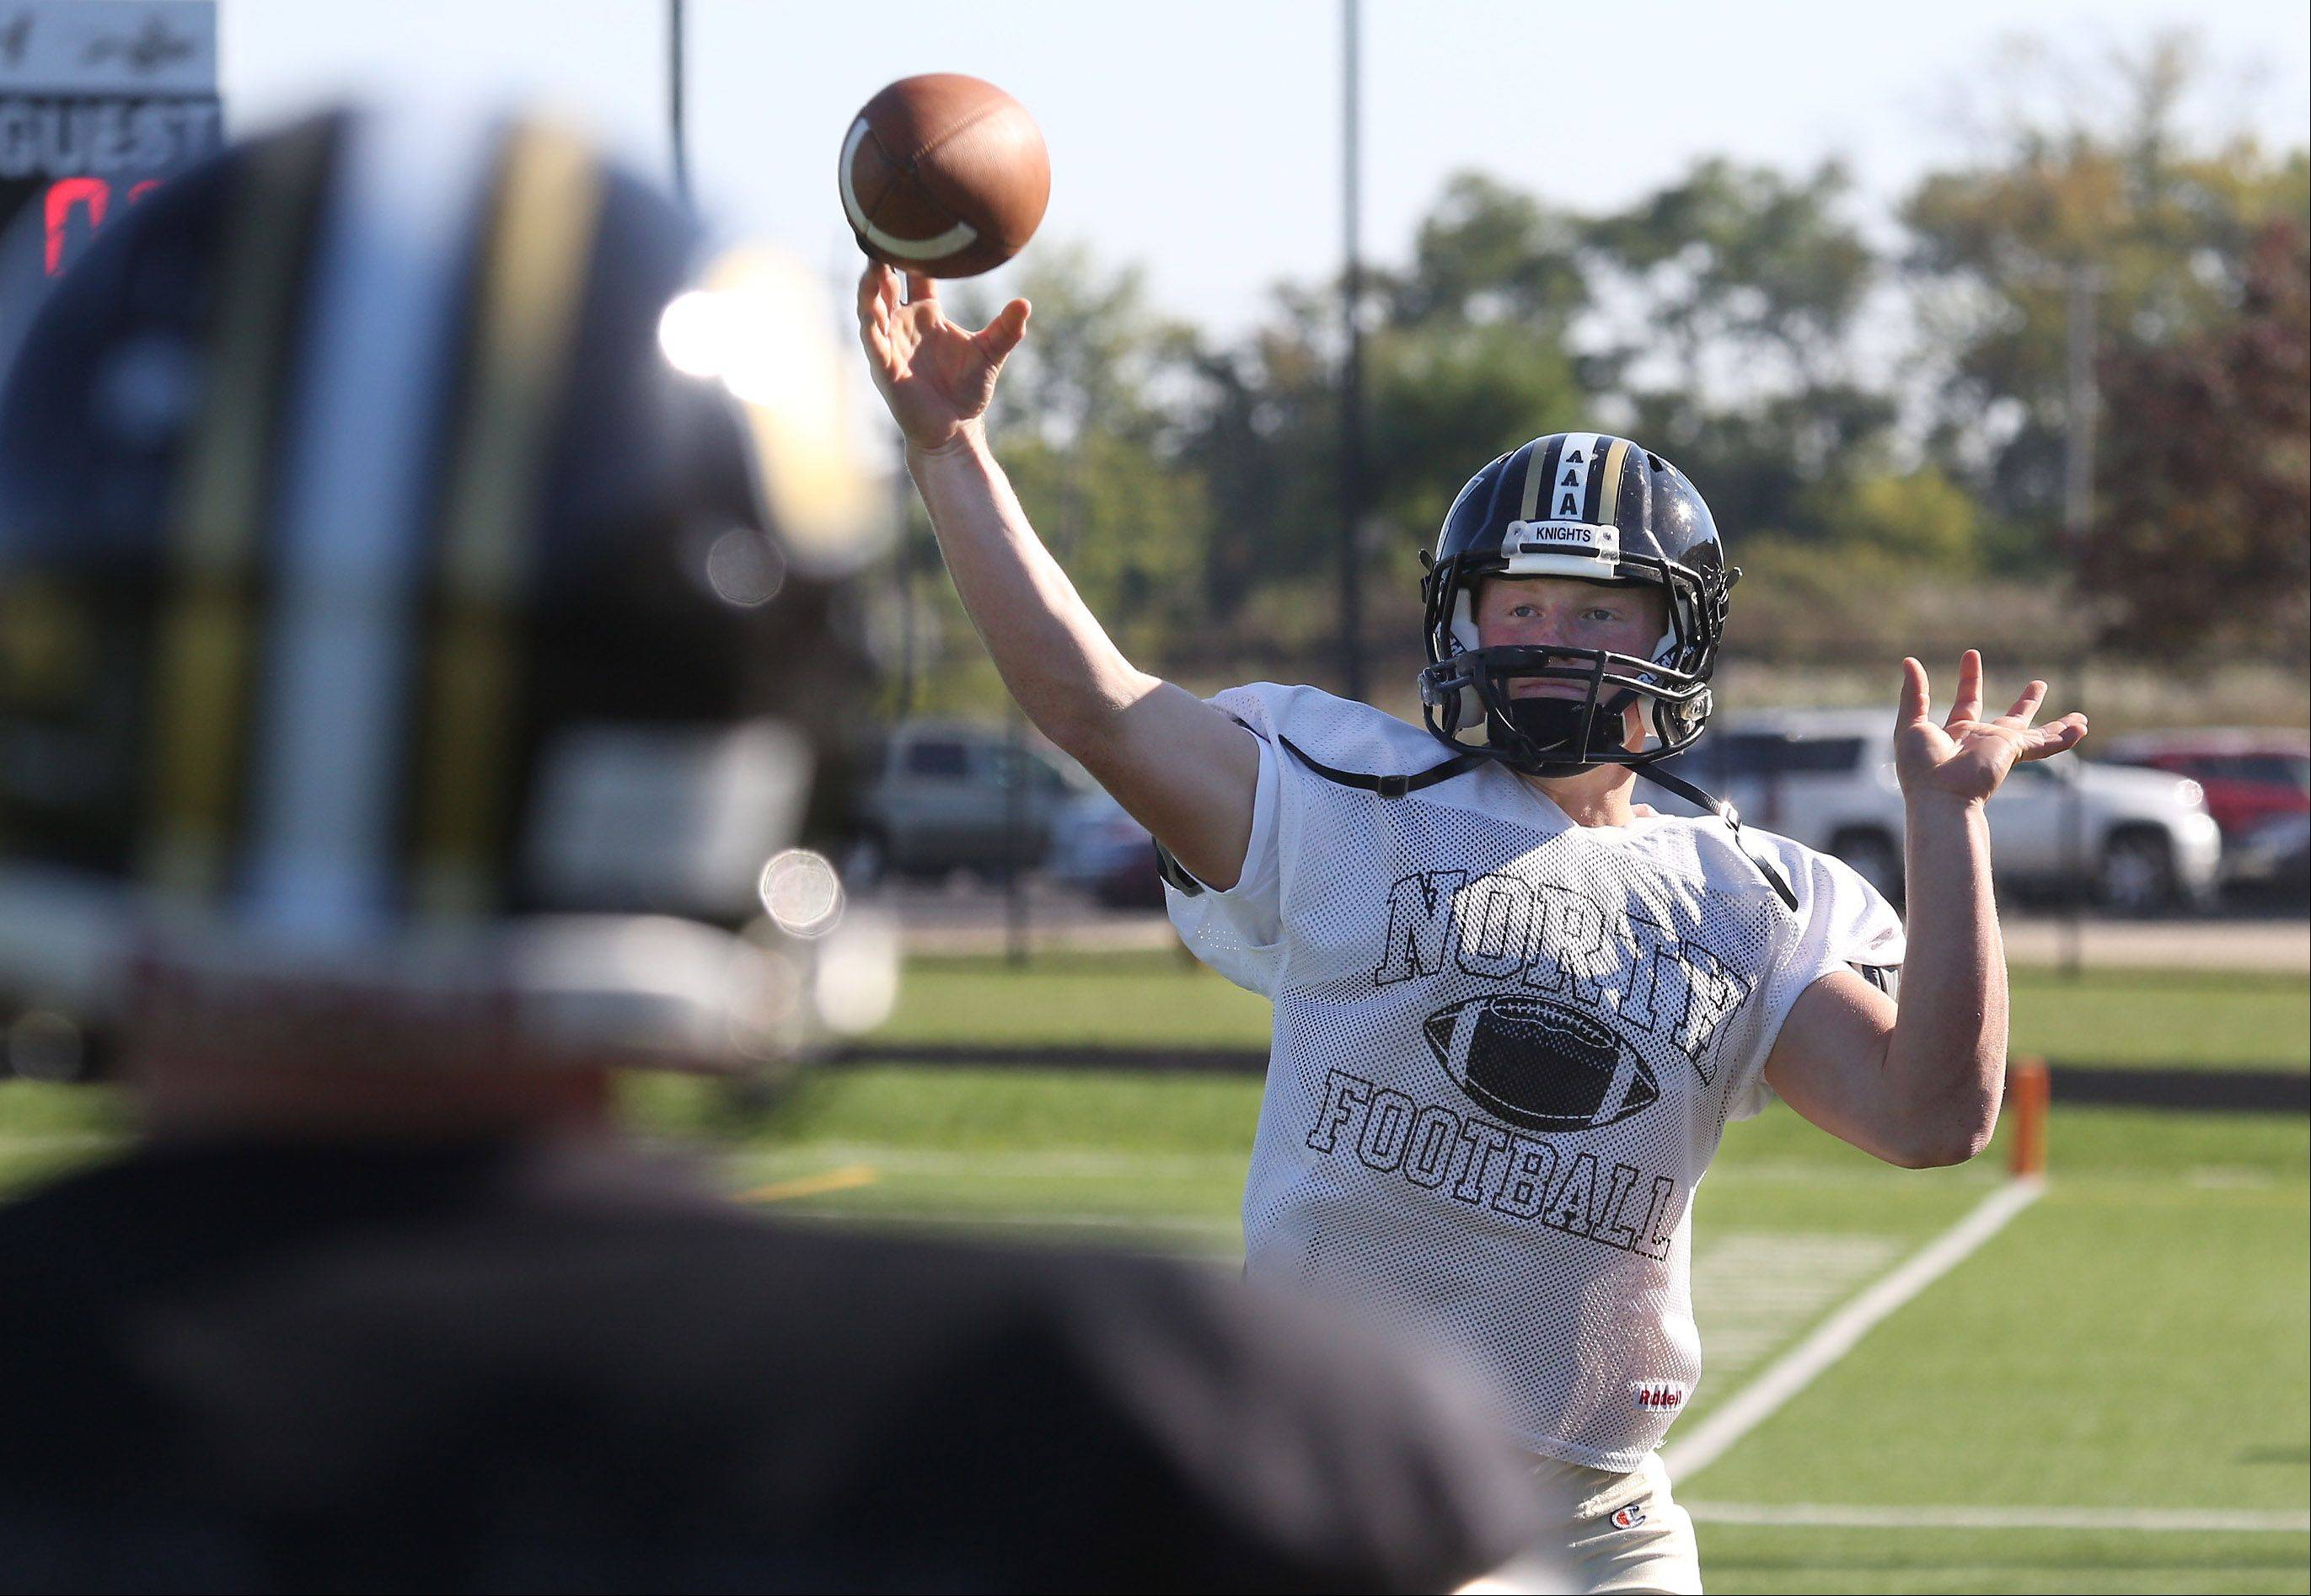 Quarterback Merrick Gentile of Grayslake has the Knights off to a 4-0 start this season while following in the footsteps of standout QB A.J. Fish.